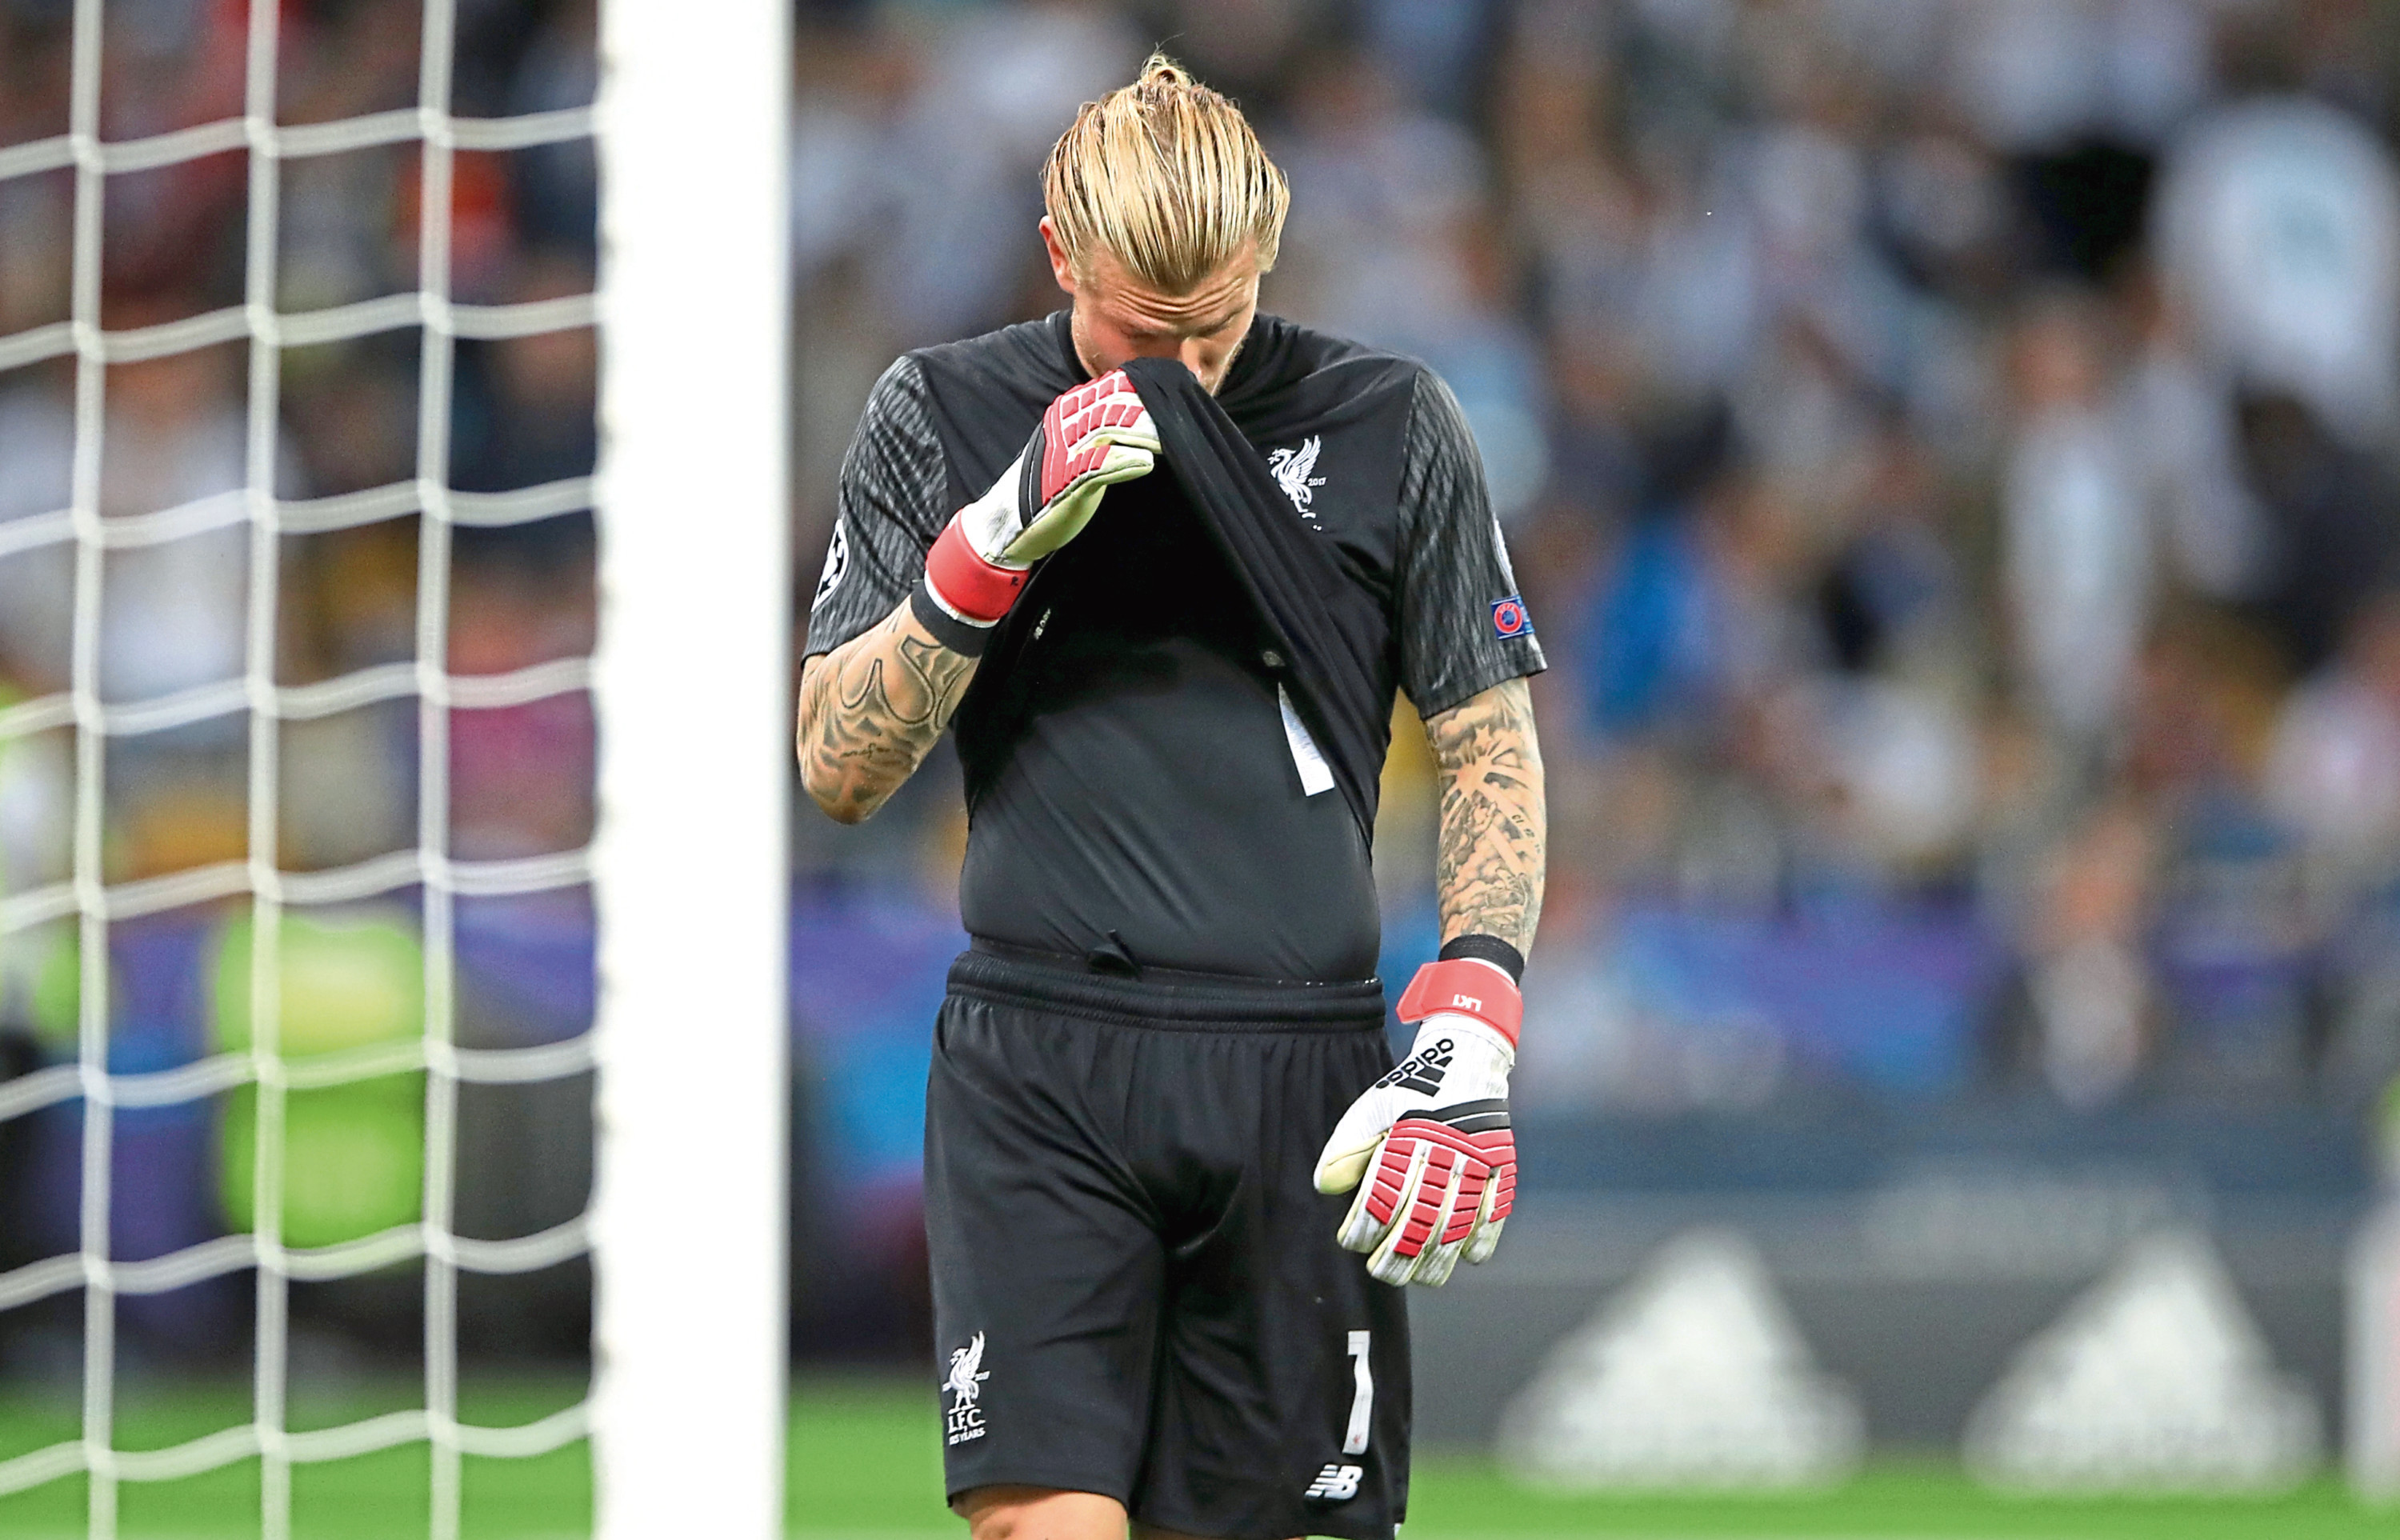 Liverpool goalkeeper Loris Karius is dejected during the UEFA Champions League Final at (Nick Potts / PA Wire)